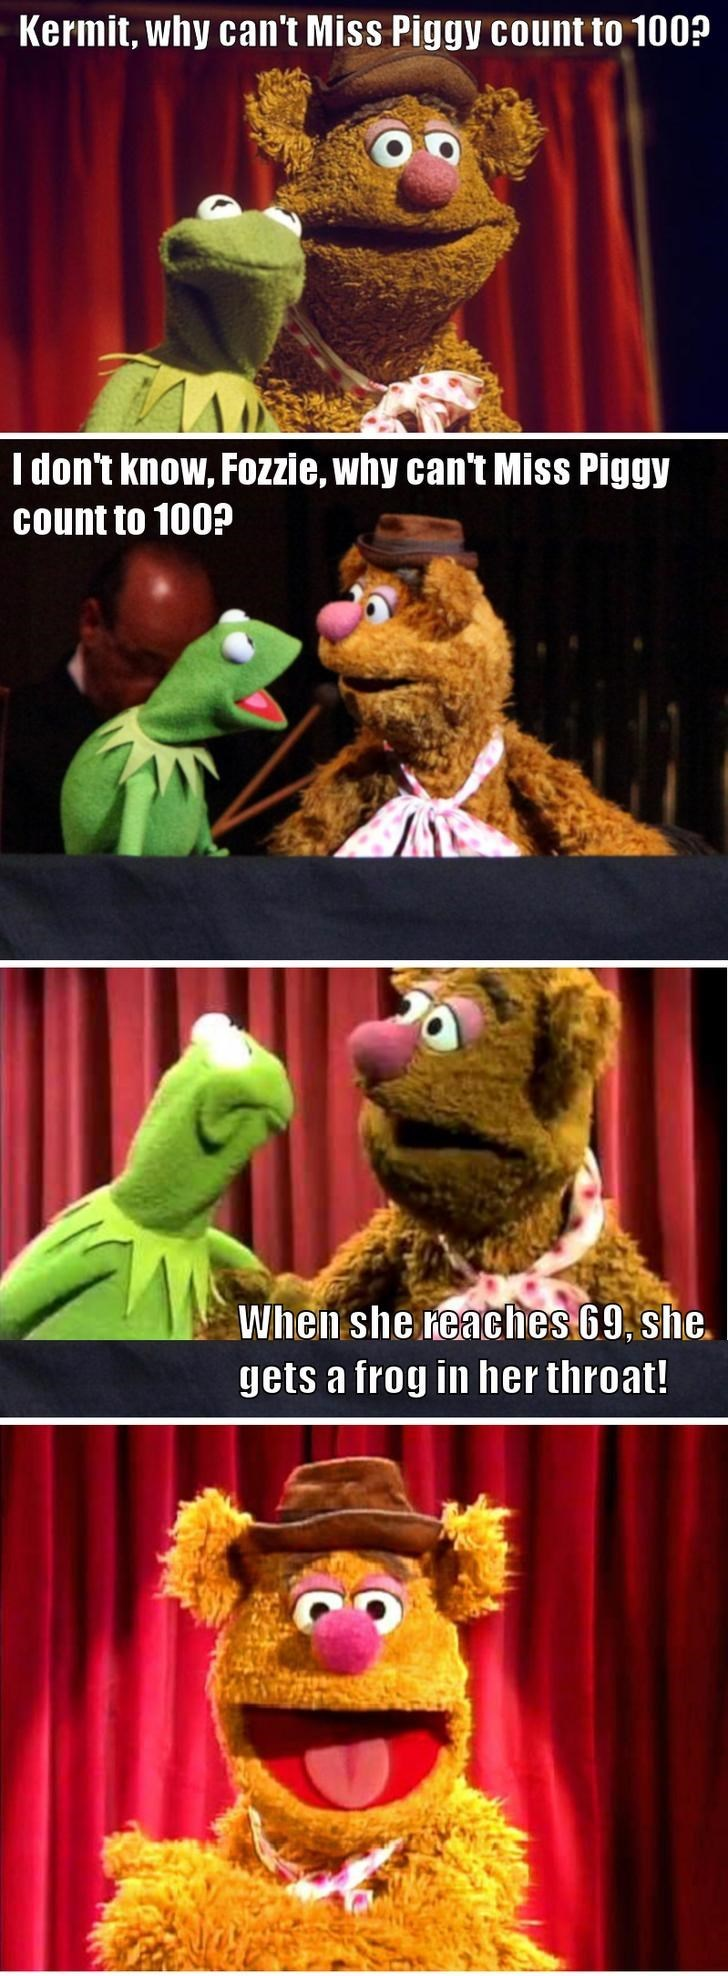 bert and ernie - Internet meme - Kermit, why can't Miss Piggy count to 100? I don't know, Fozzie, why can't Miss Piggy count to 100? When she reaches 69, she. gets a frog in her throat!